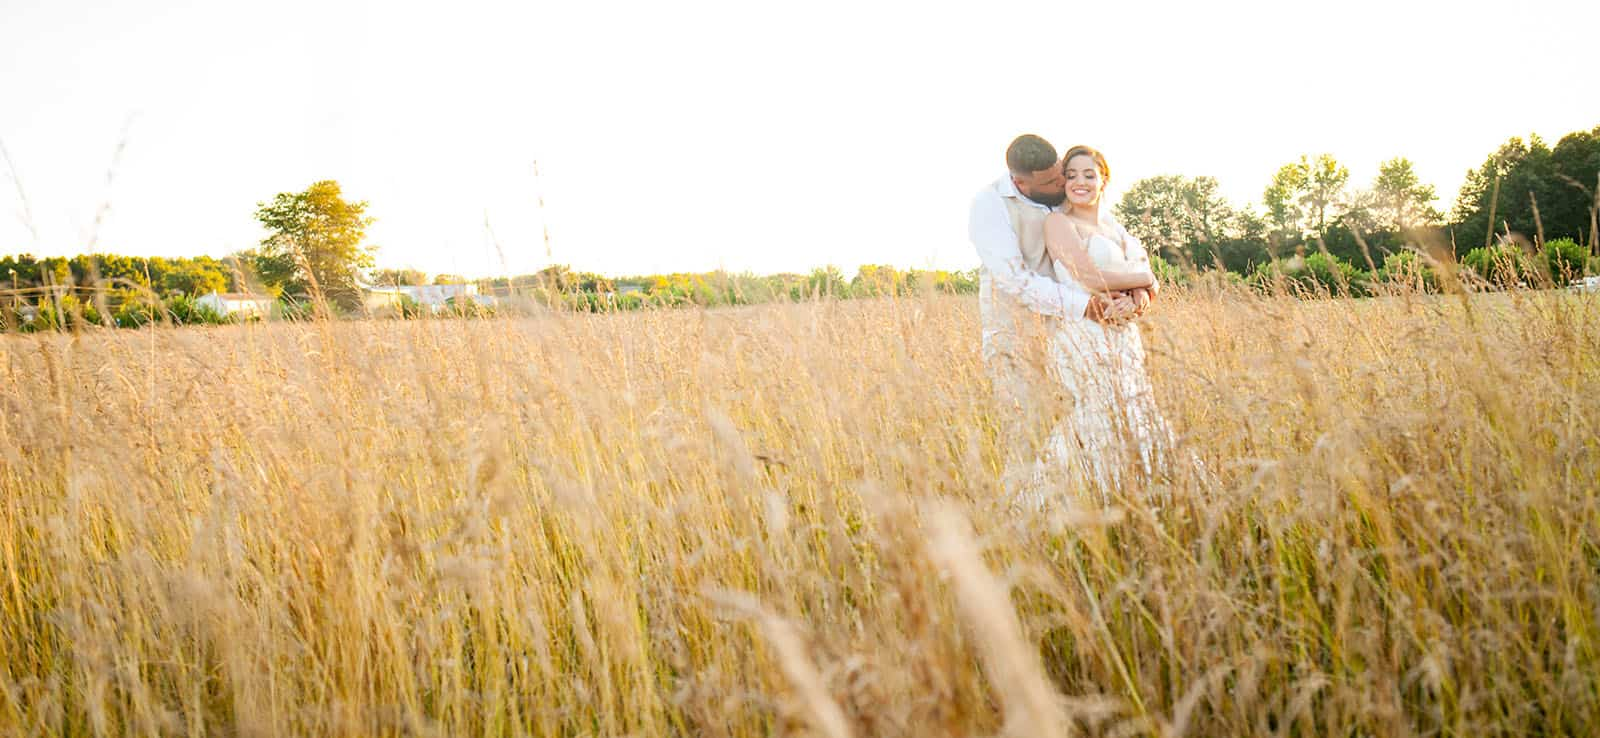 groom kisses bride on the neck from behind in tall grass field